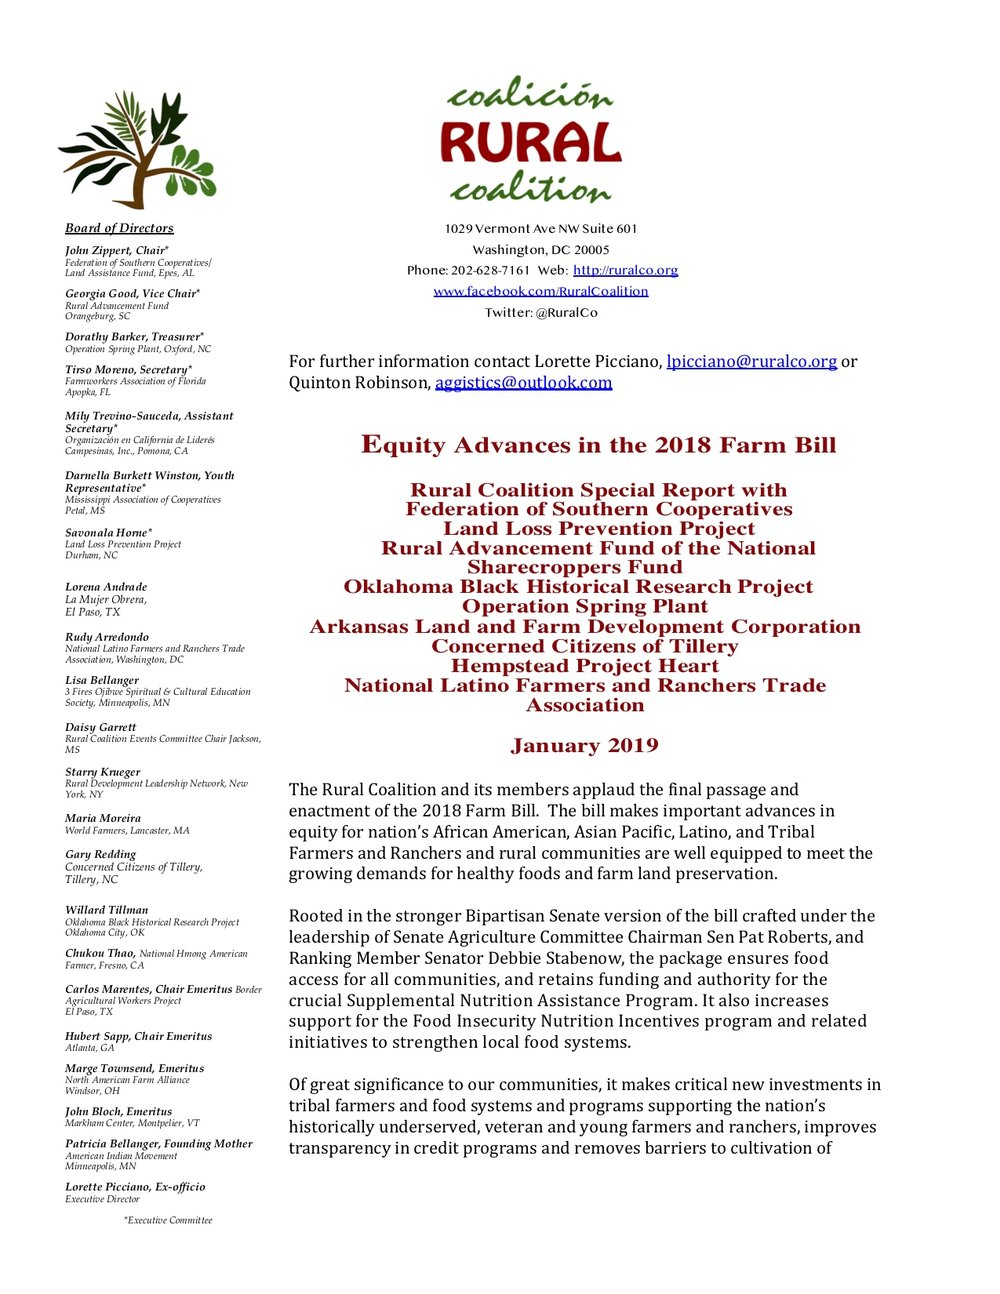 Equity Advances in the Rural Co Preliminary Report Jan 2019.jpg